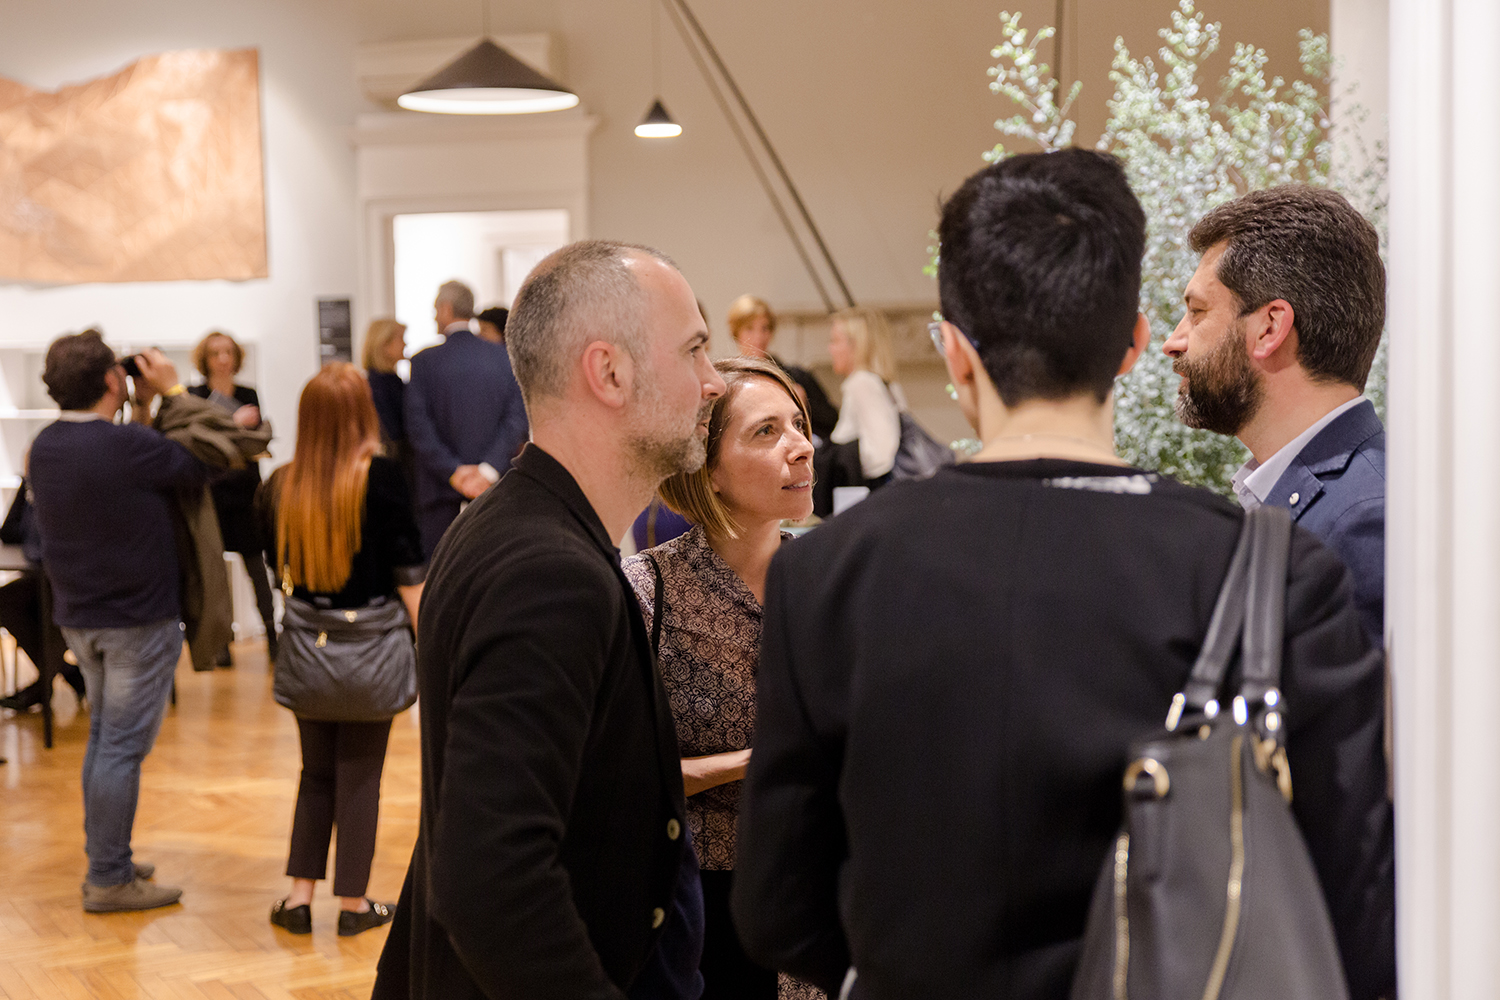 Archiproducts Events